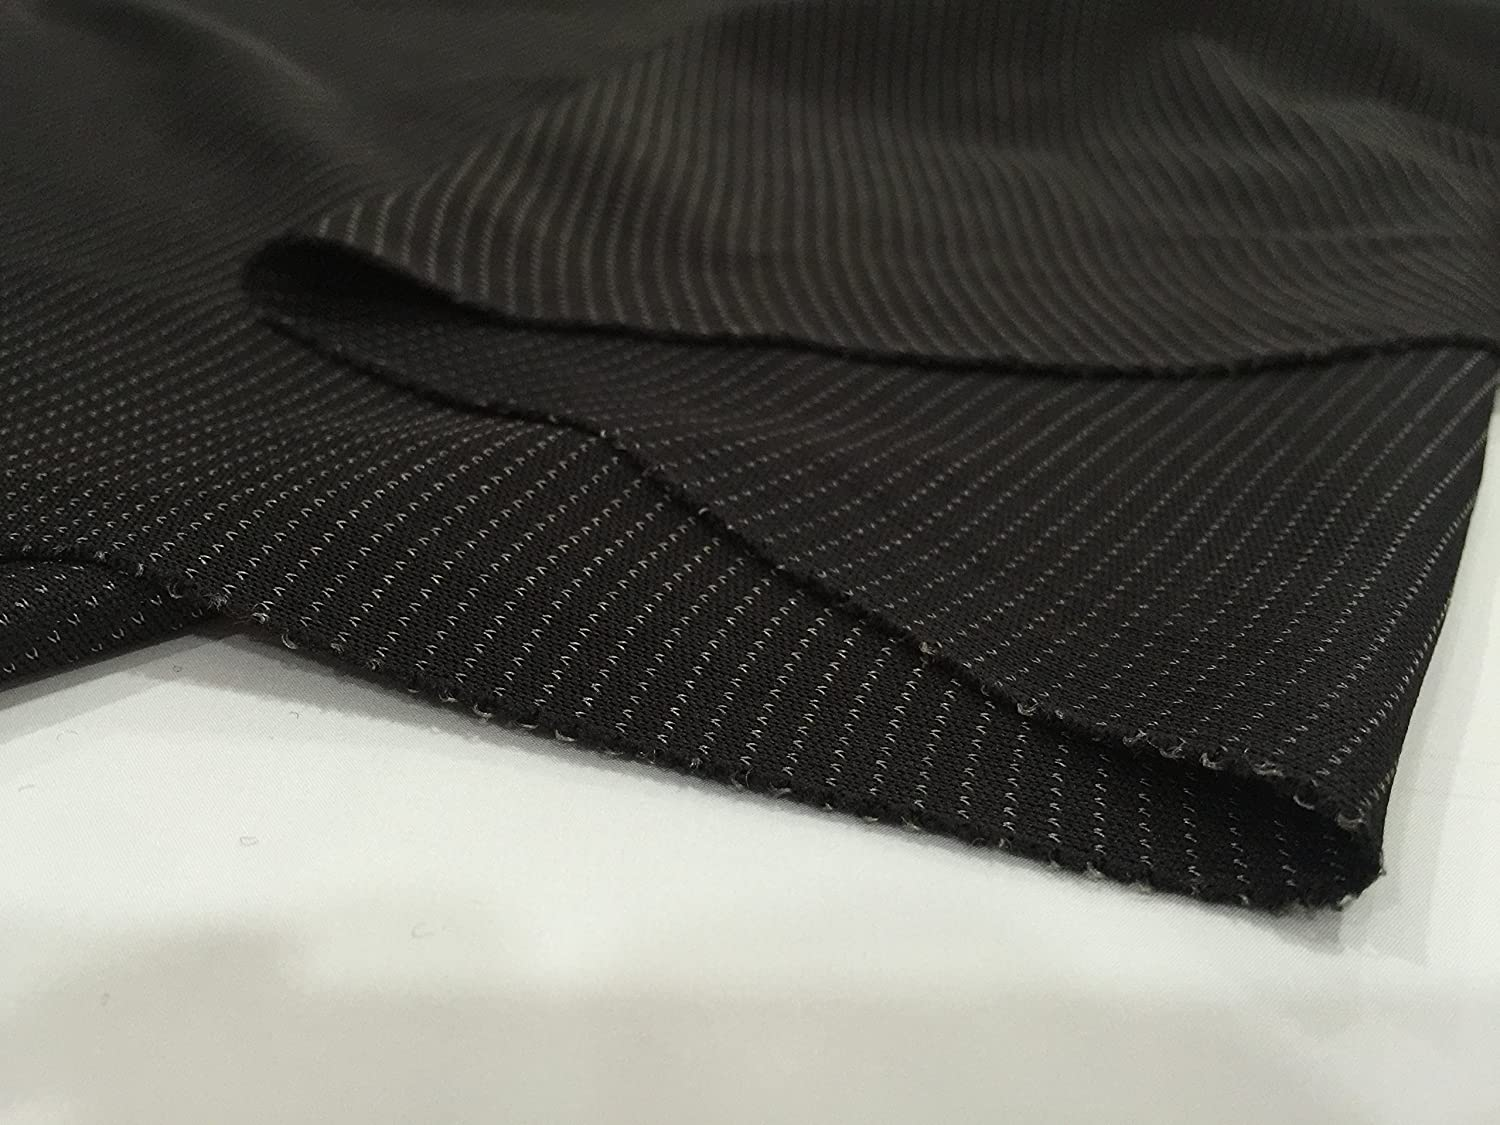 Amazon.com: JWtextec 7%Silver Fiber Conductive Fabric Knitted Technique Anti Radiation Fabric (50x19.685 Inches(1.27mX0.5m))